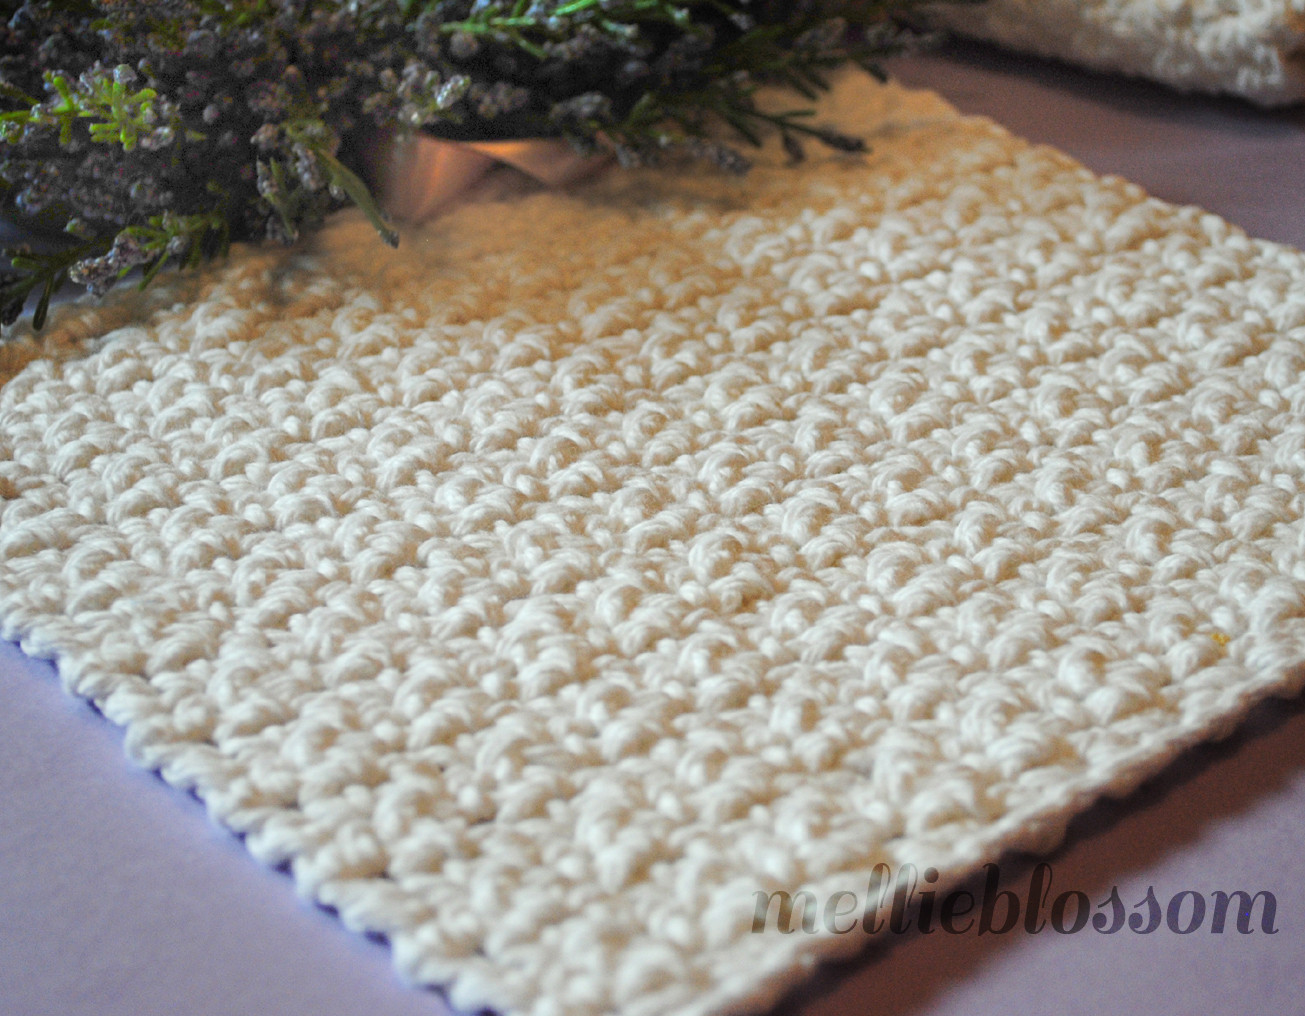 Free Easy Crochet Patterns Beautiful Free Easy Crochet Dishcloth Pattern Mellie Blossom Of Superb 49 Images Free Easy Crochet Patterns